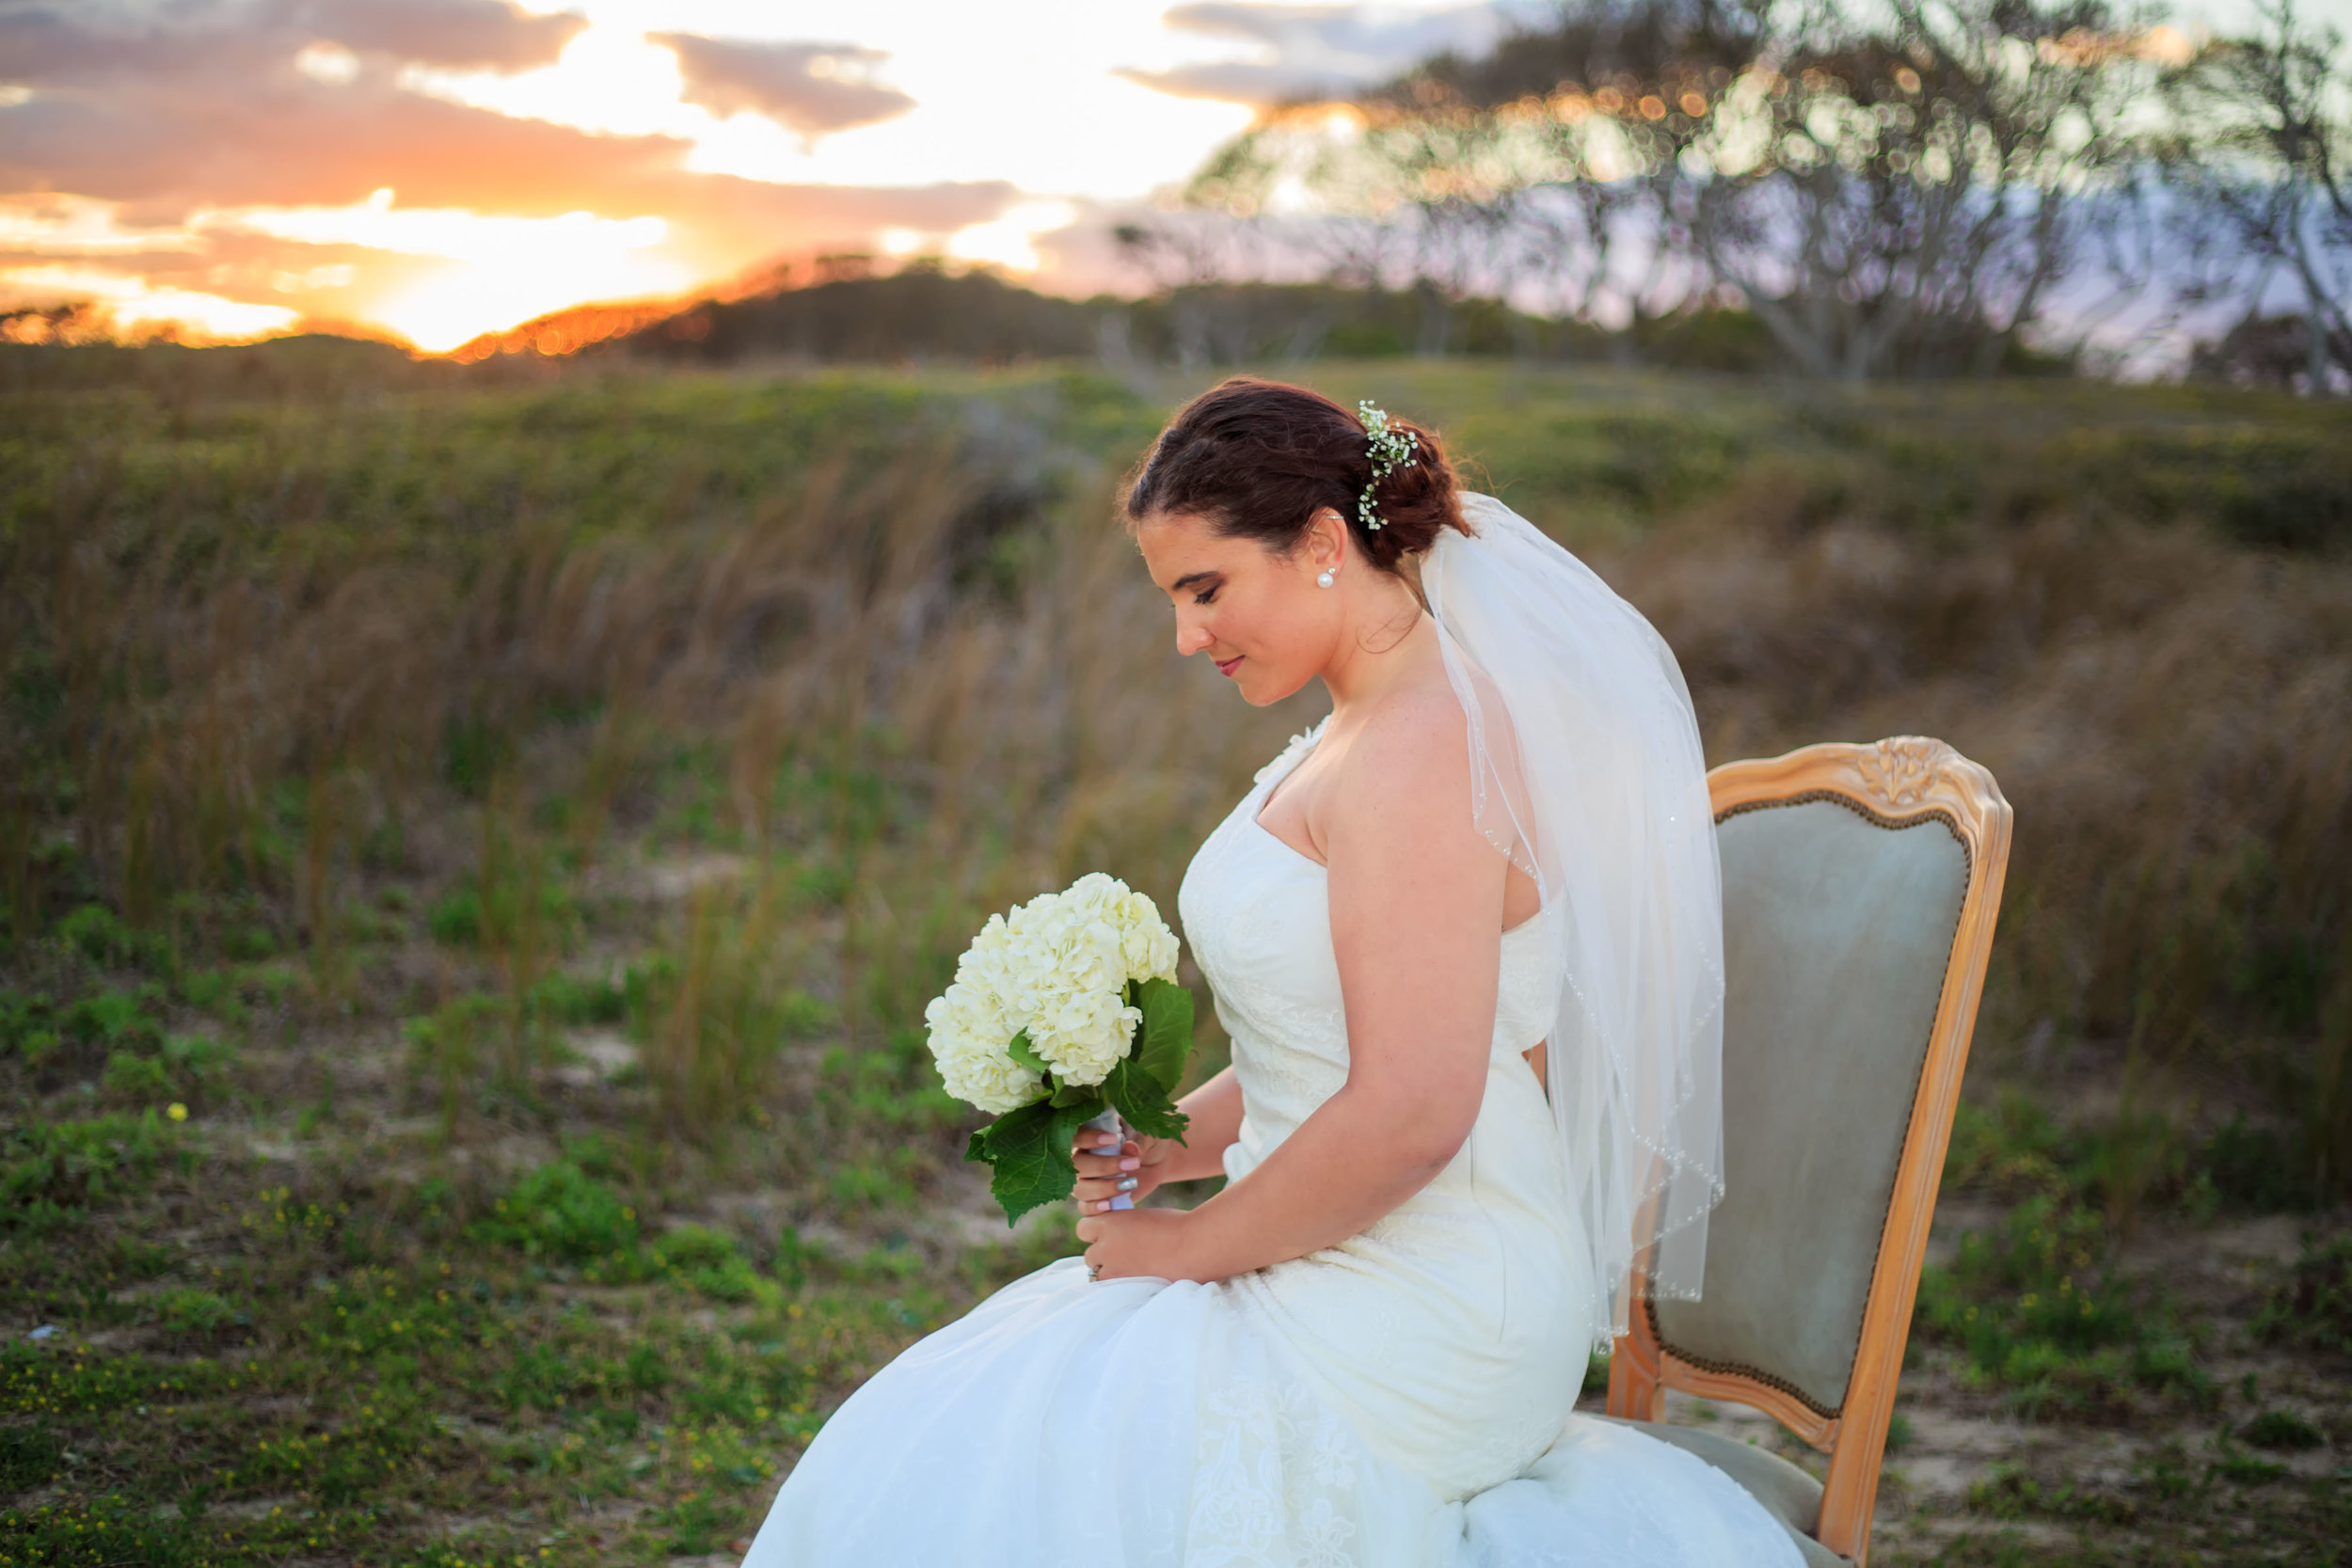 Fort-Fisher-Wedding-Bridal-Portrait-Tiffany-Abruzzo-Photography-46.jpg